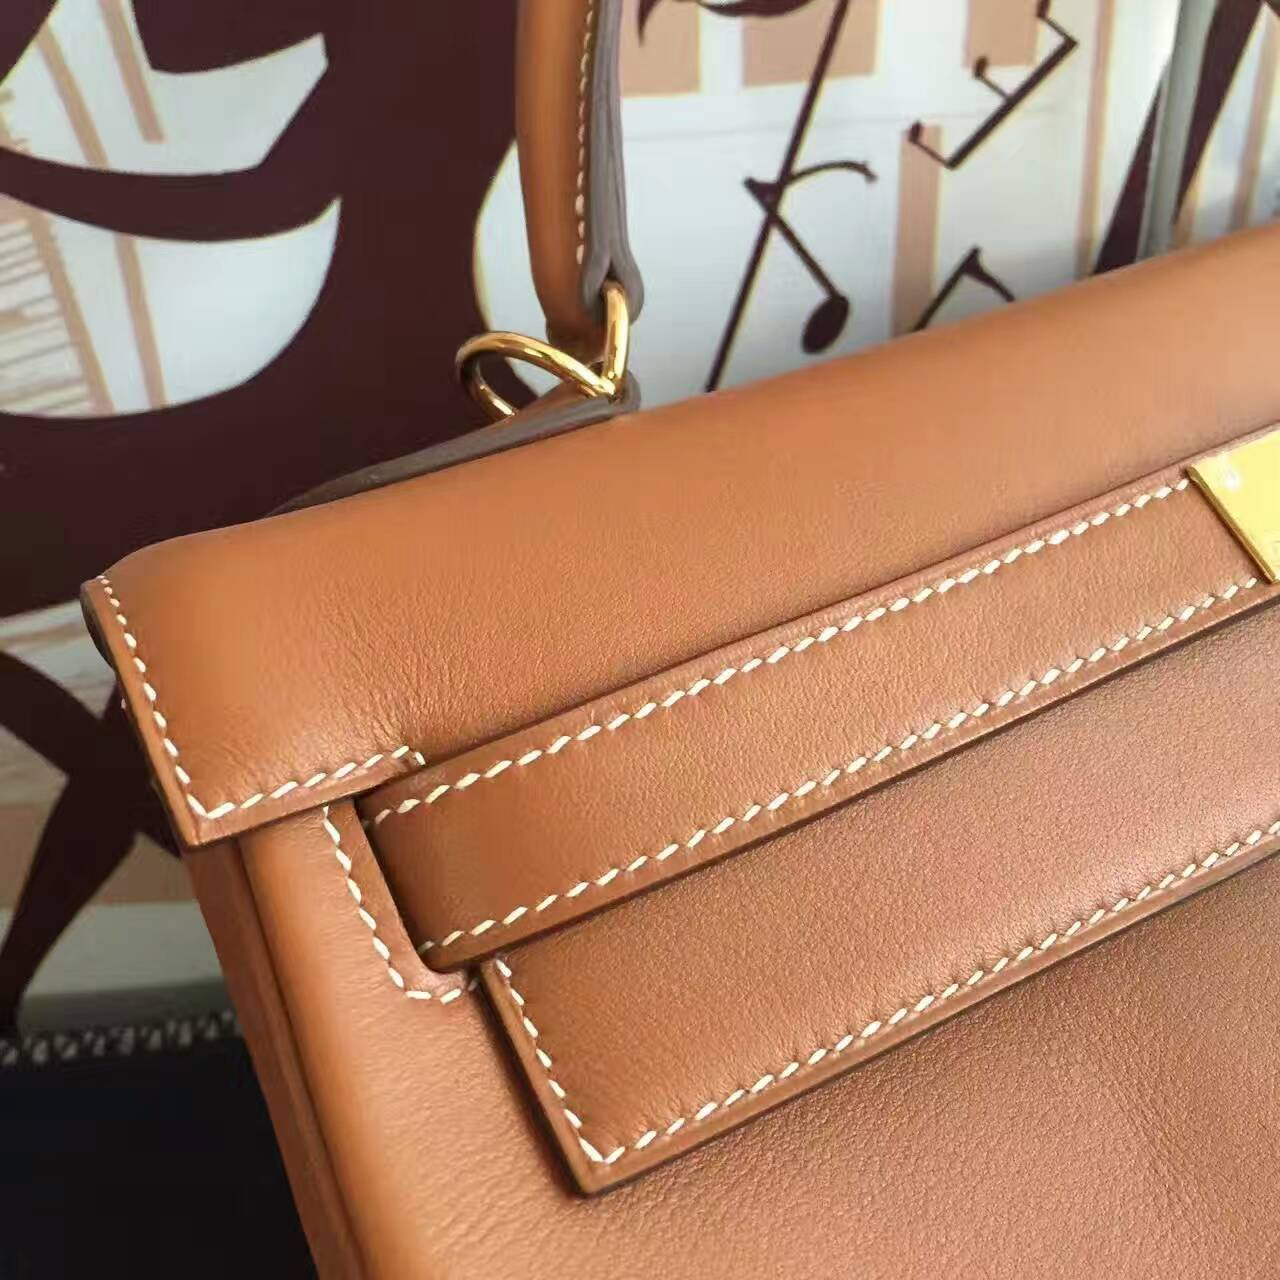 Hand Stitching Hermes CK37 Gold Swift Leather Retourne Kelly Bag 32CM